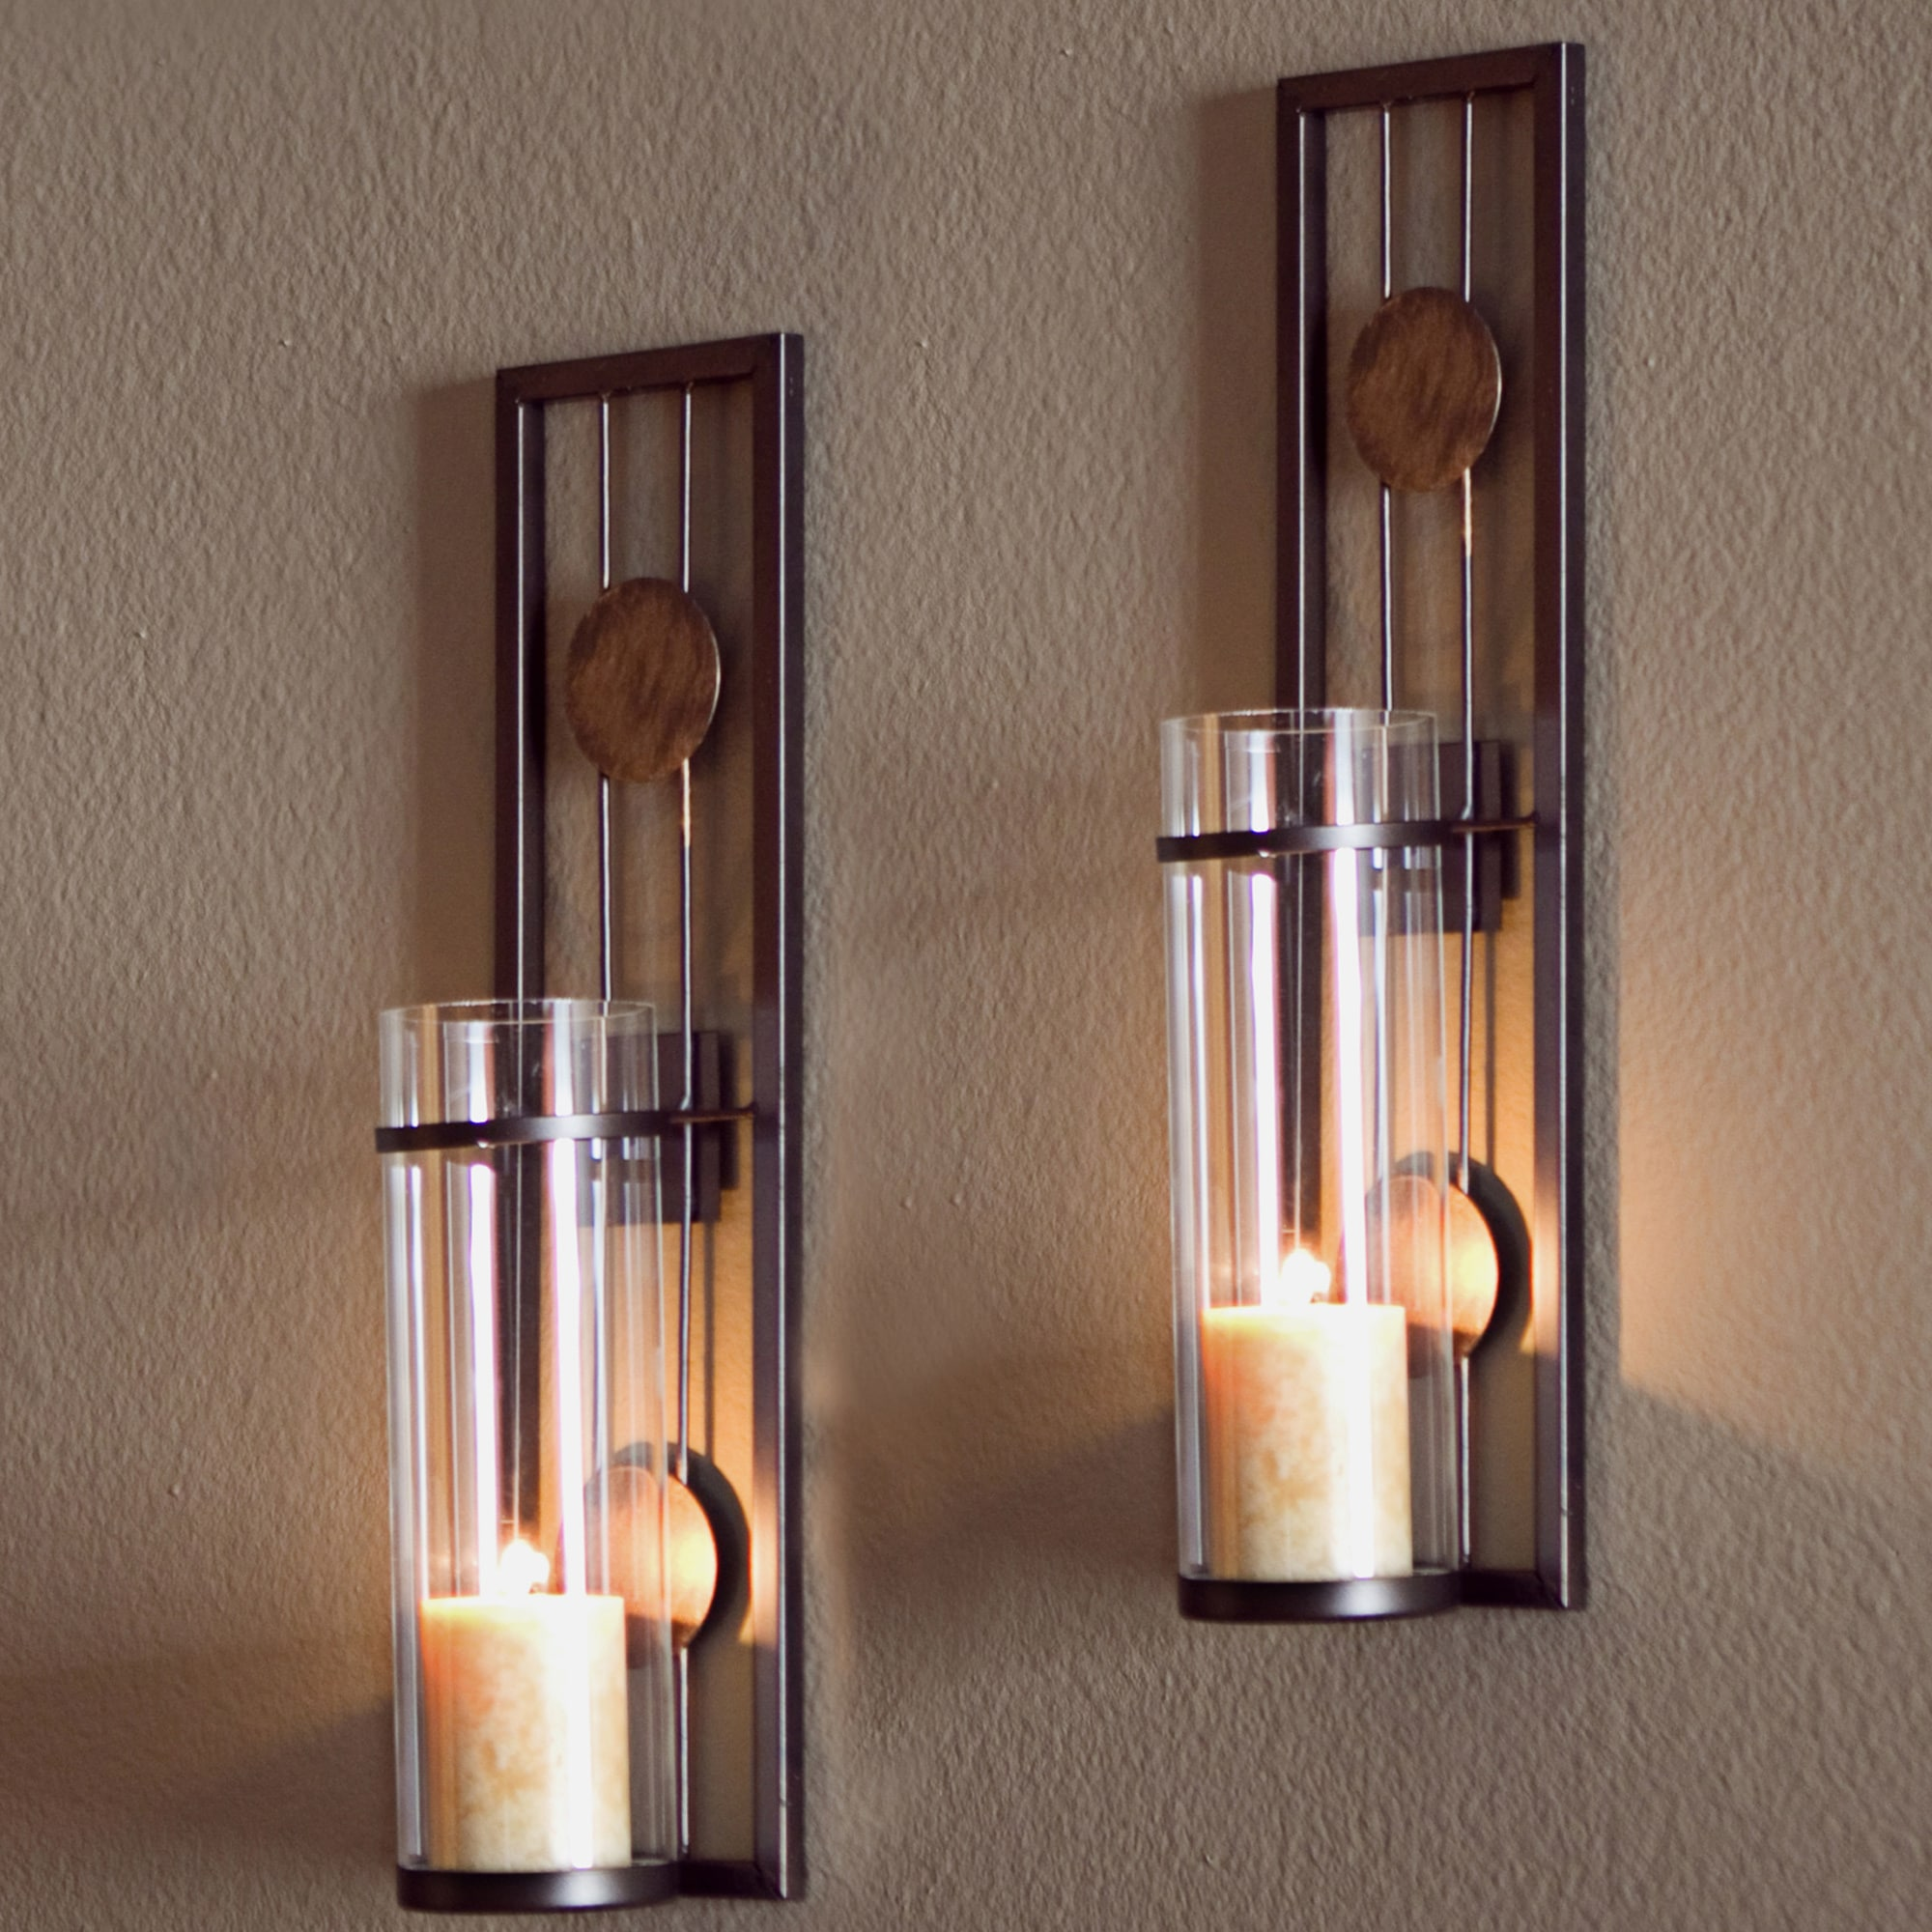 8eceef8e4 Buy Candles   Candle Holders Online at Overstock